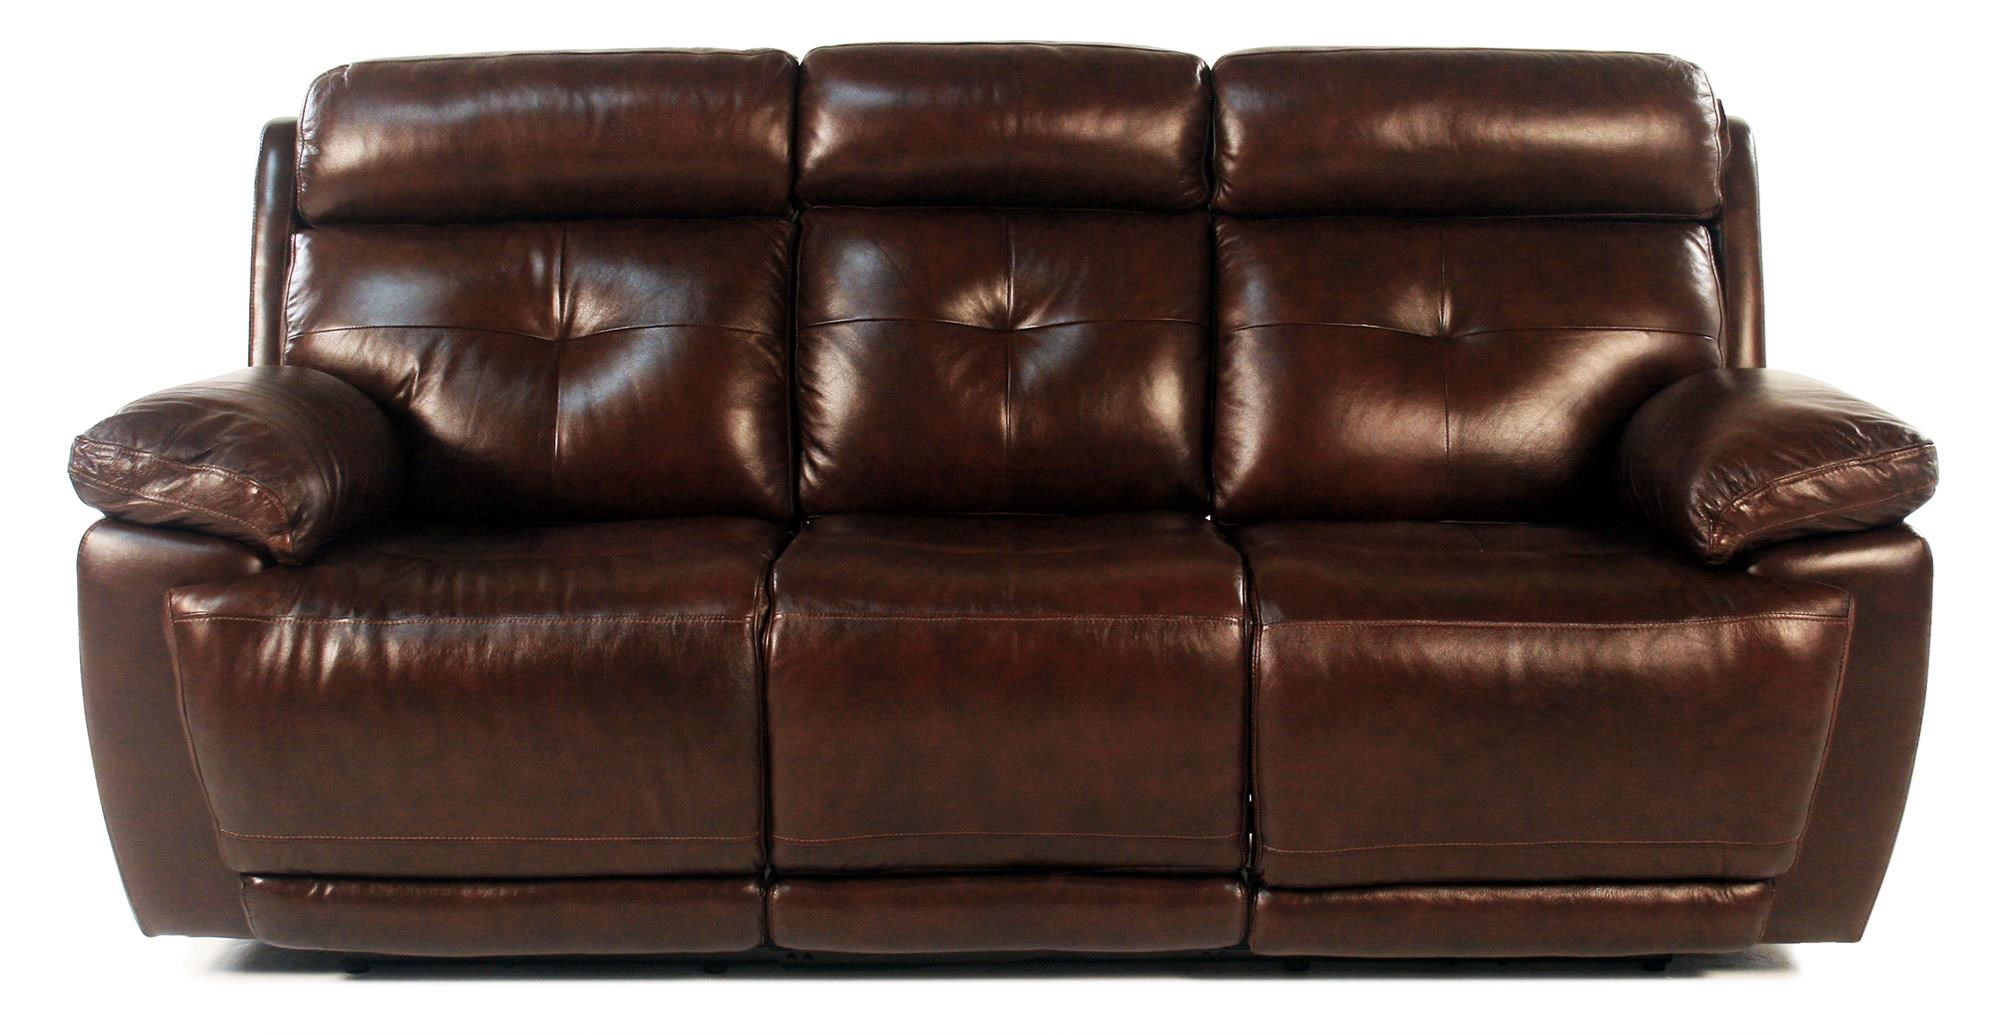 Loft Leather Jasper Power Reclining Leather Sofa - Item Number: E1268-317